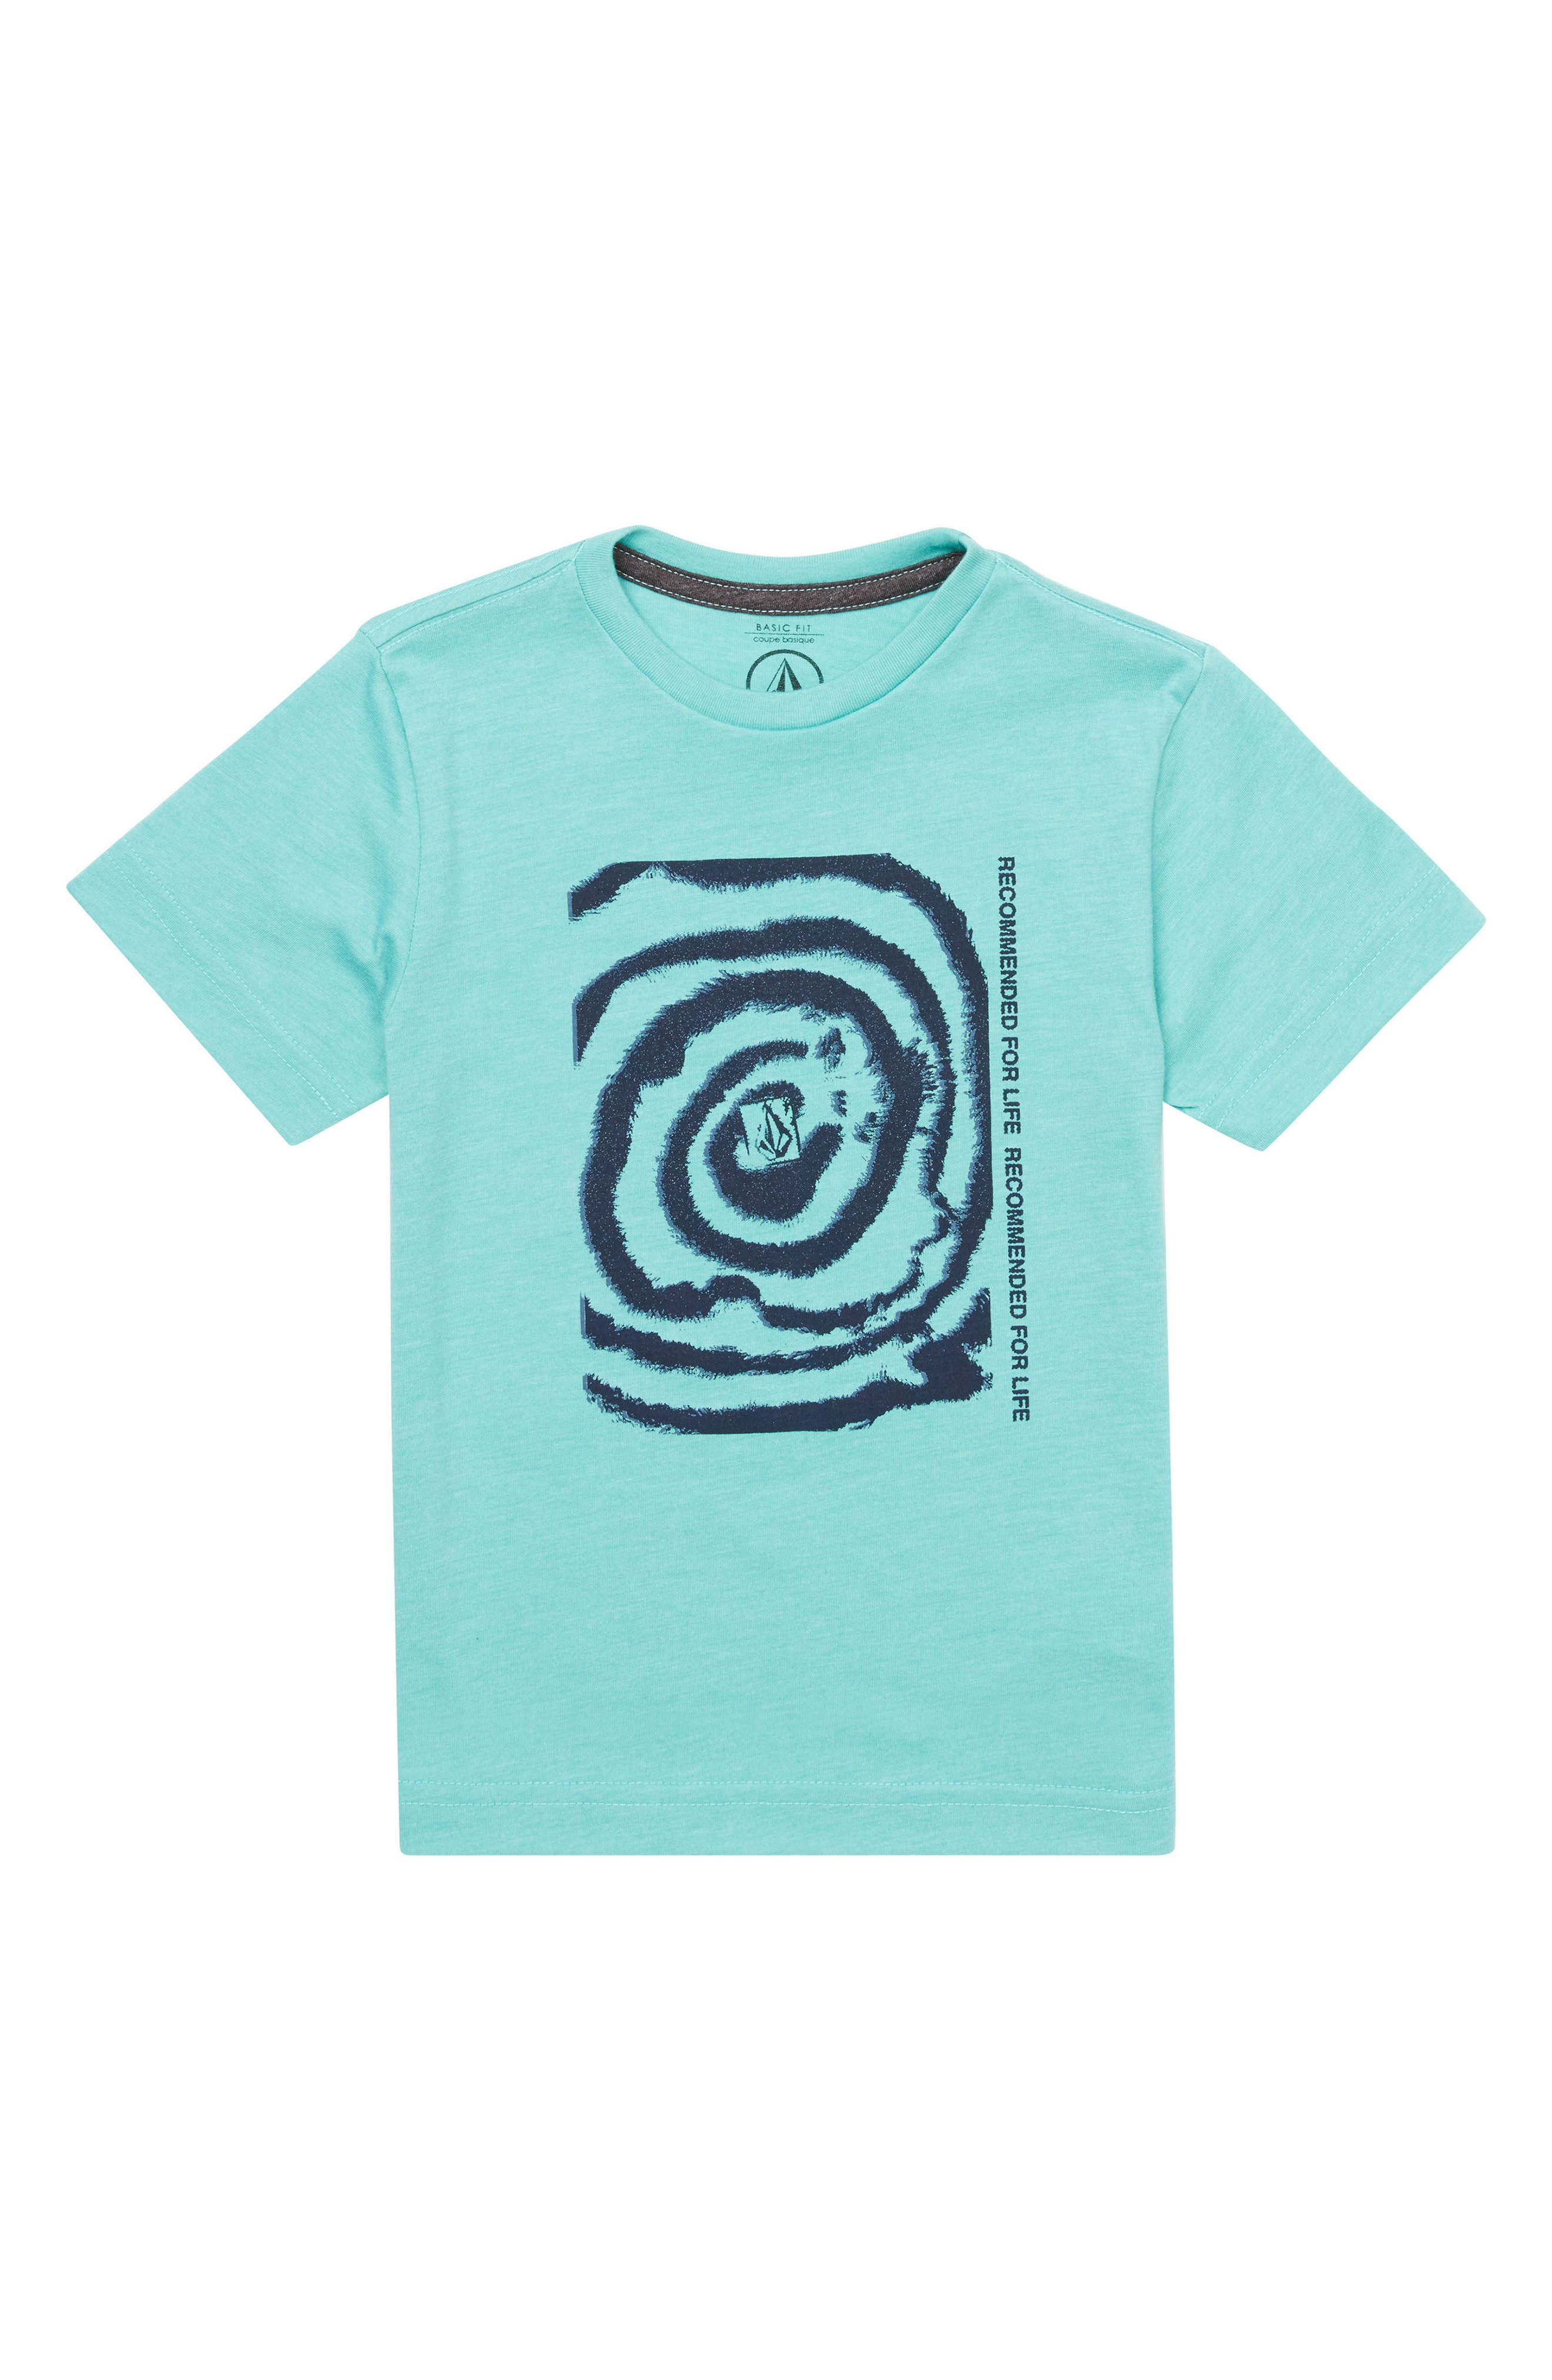 Maag Graphic T-Shirt,                             Main thumbnail 1, color,                             Turquoise